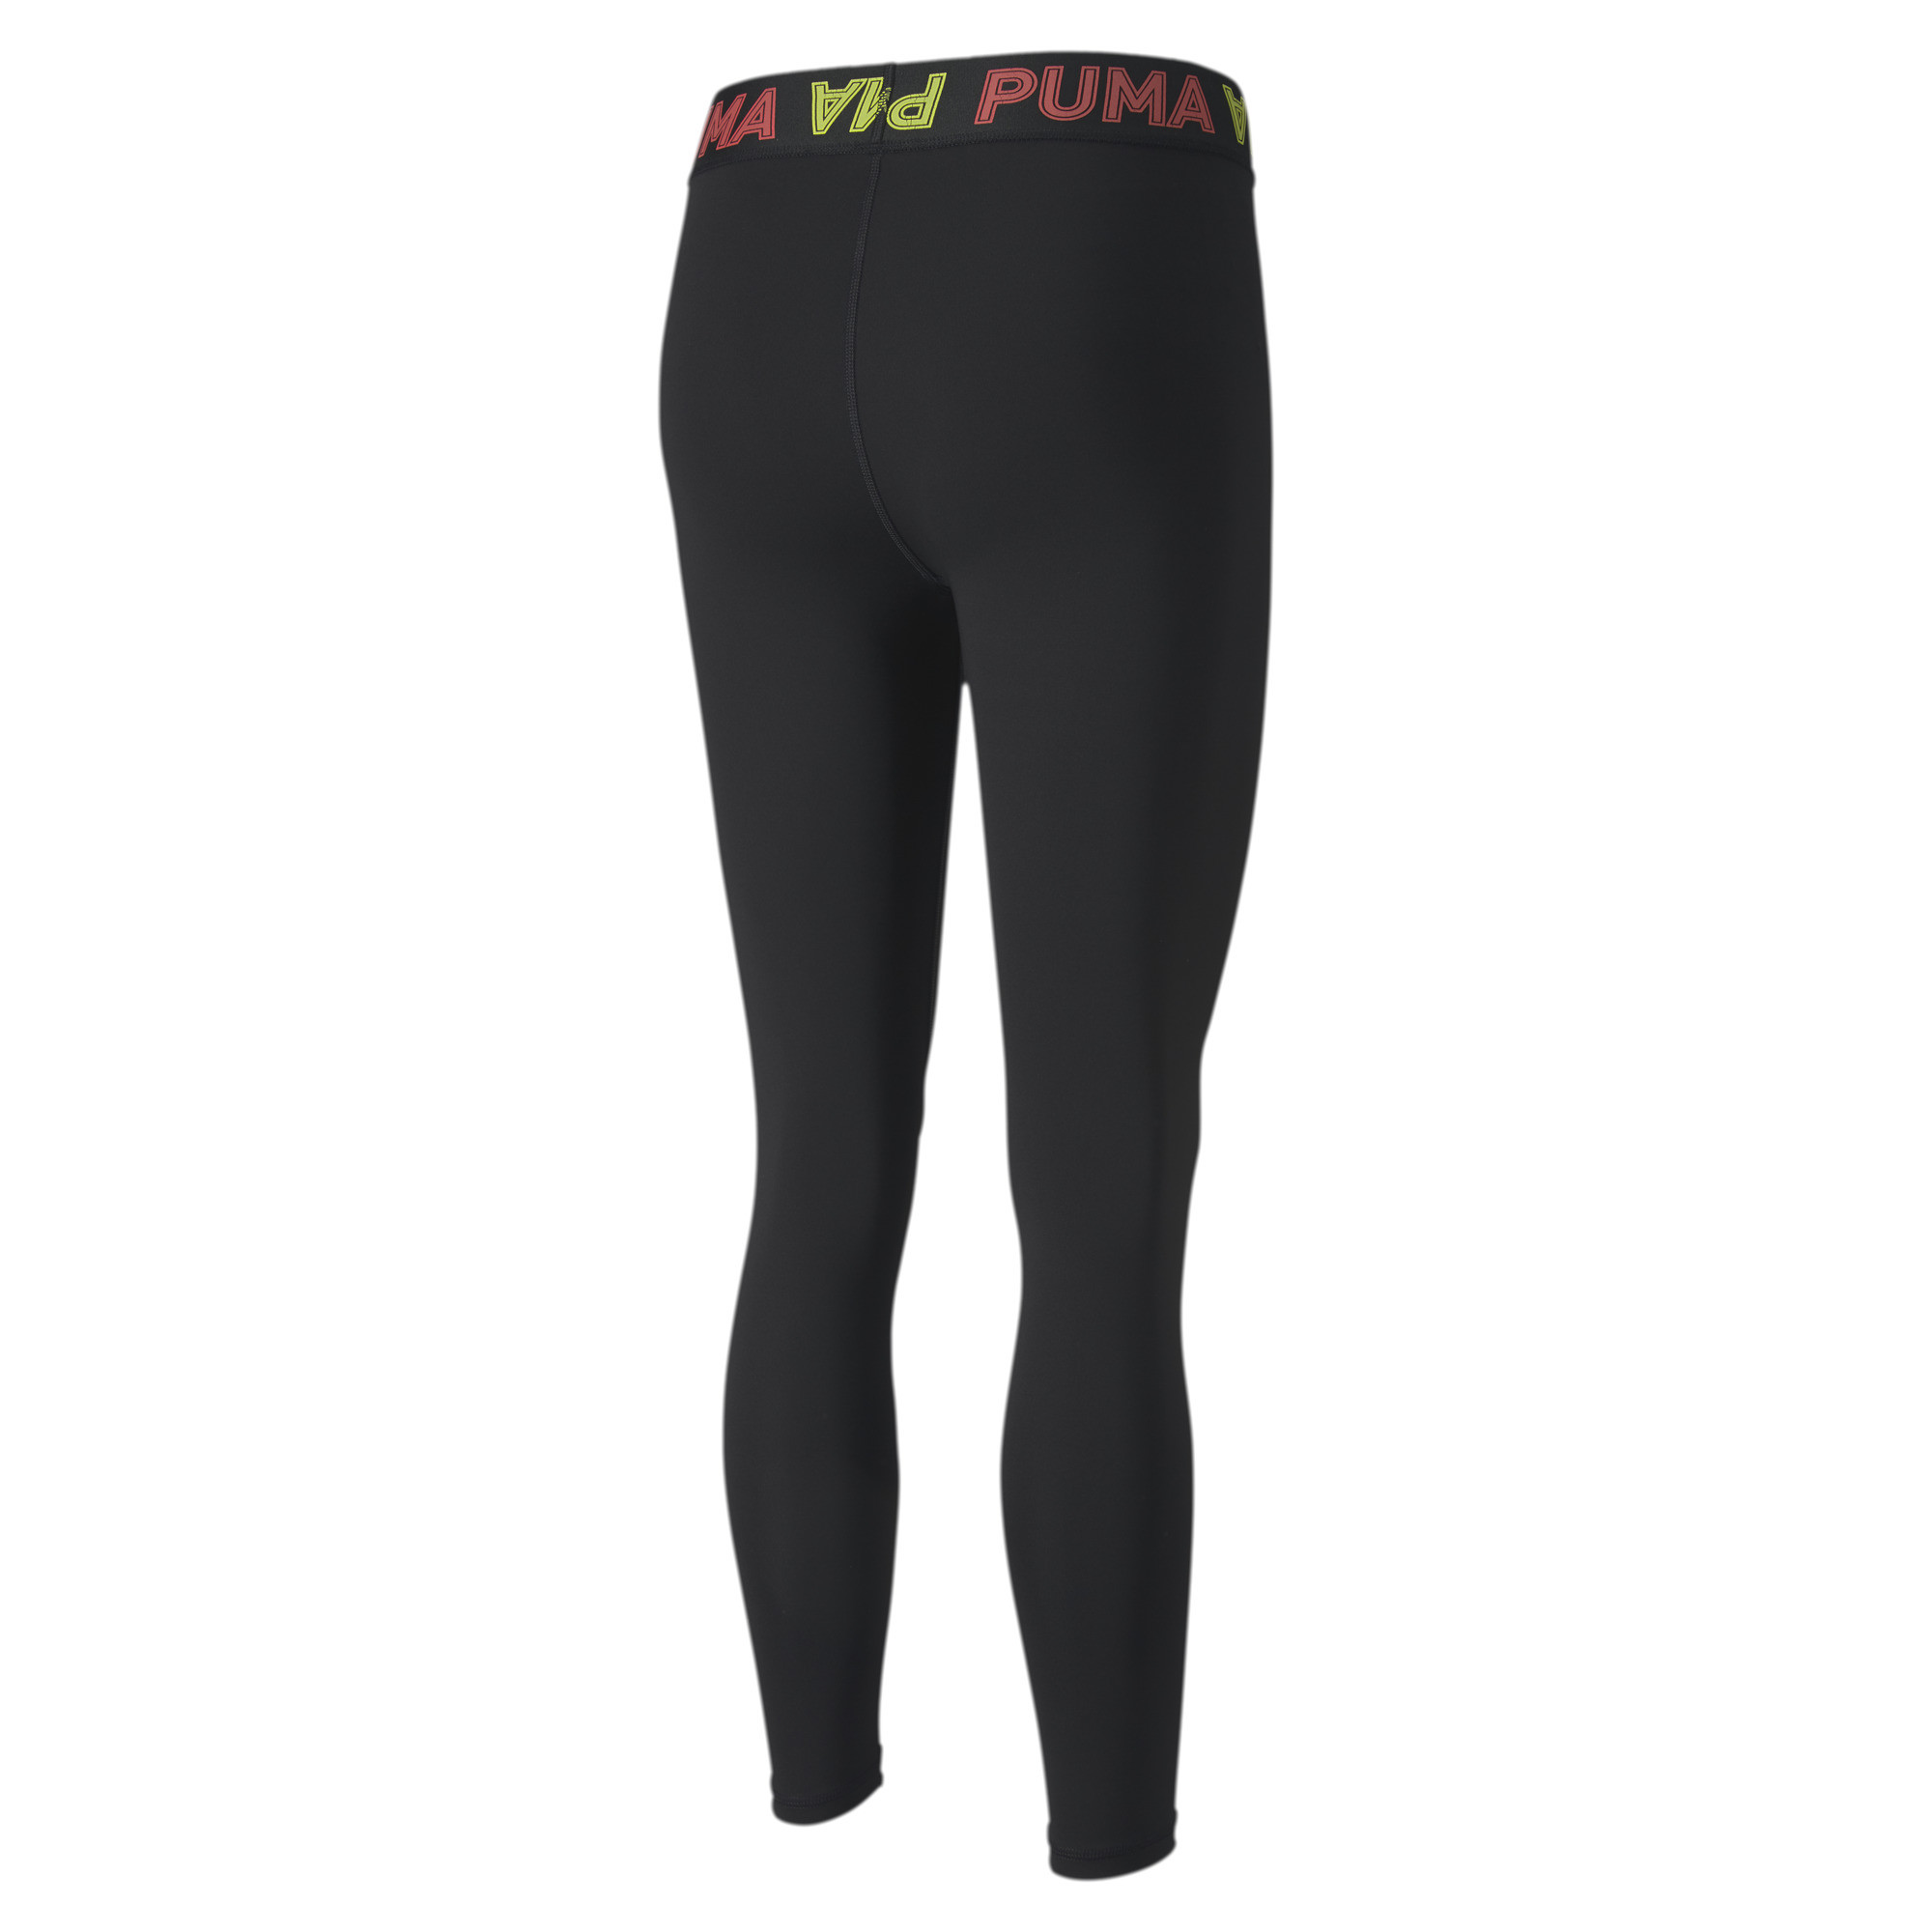 PUMA-Modern-Sports-Women-039-s-Band-Leggings-Women-Basics thumbnail 3